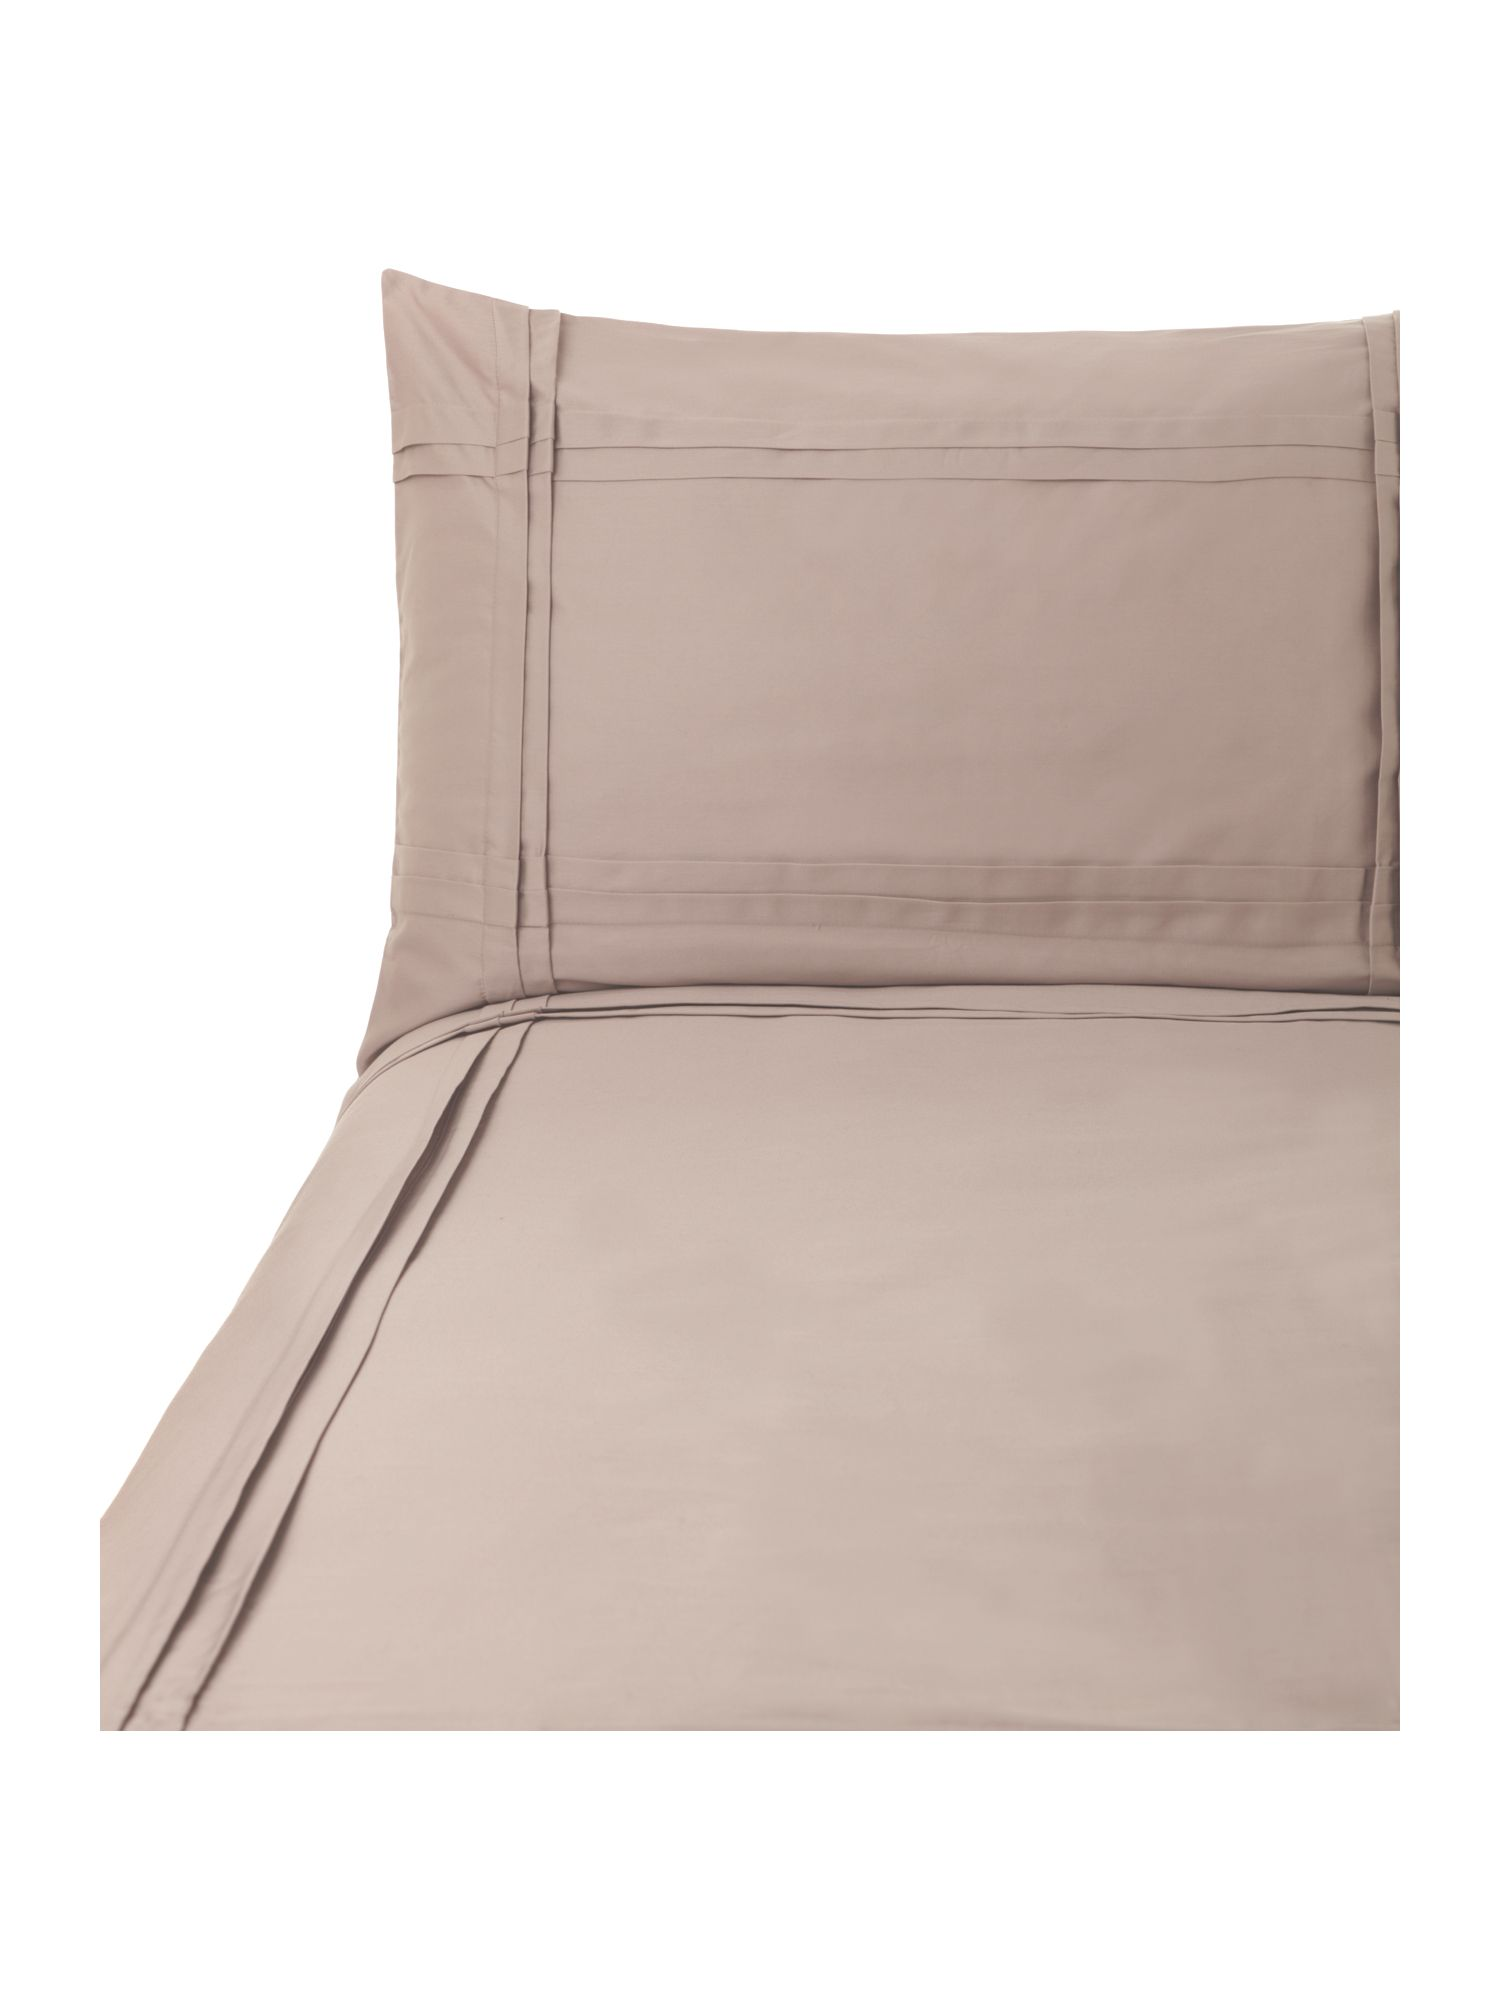 Criss Cross Pleats double duvet cover set taupe